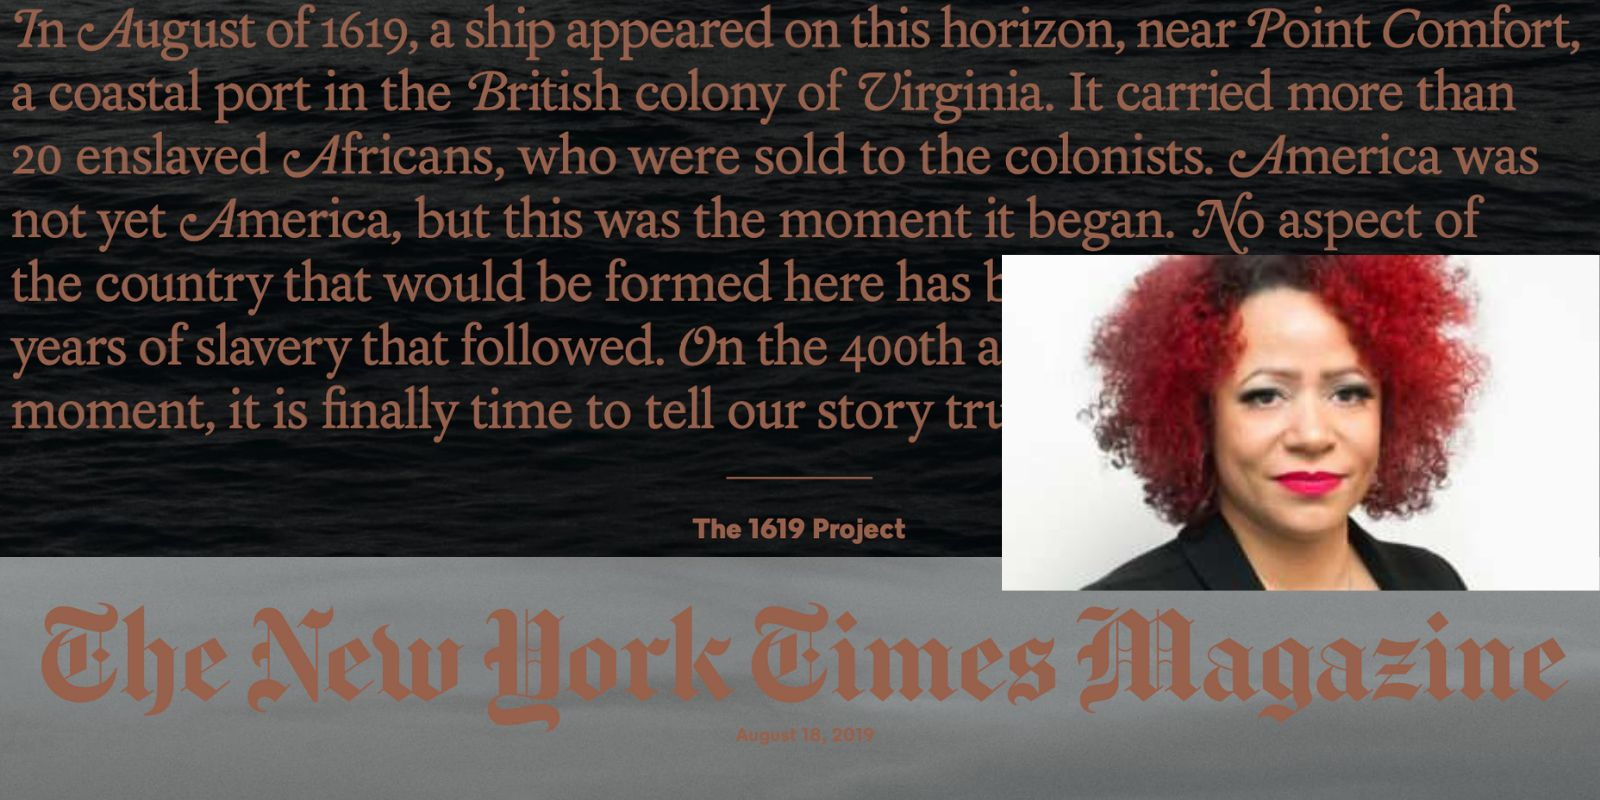 As The New York Times deletes portions of the '1619 Project,' its creator deletes her tweets